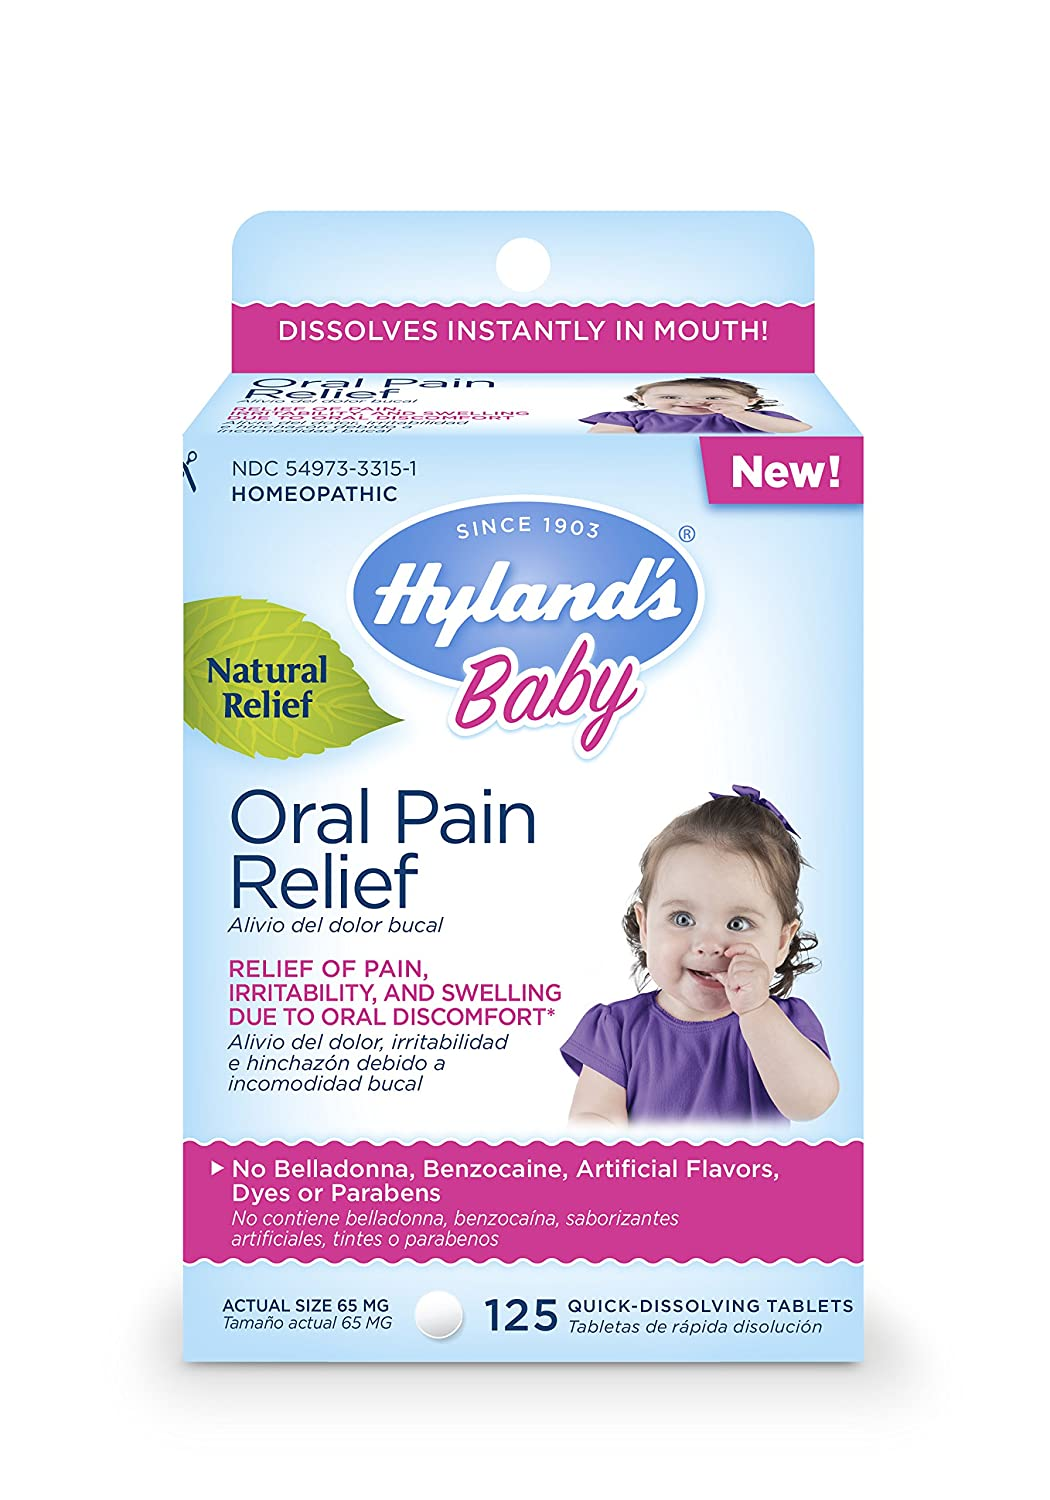 Hyland's Baby Oral Pain Relief Tablets, Soothing Natural Relief of Oral Discomfort, Irritability, and Swelling, 125 Count Hyland' s Inc